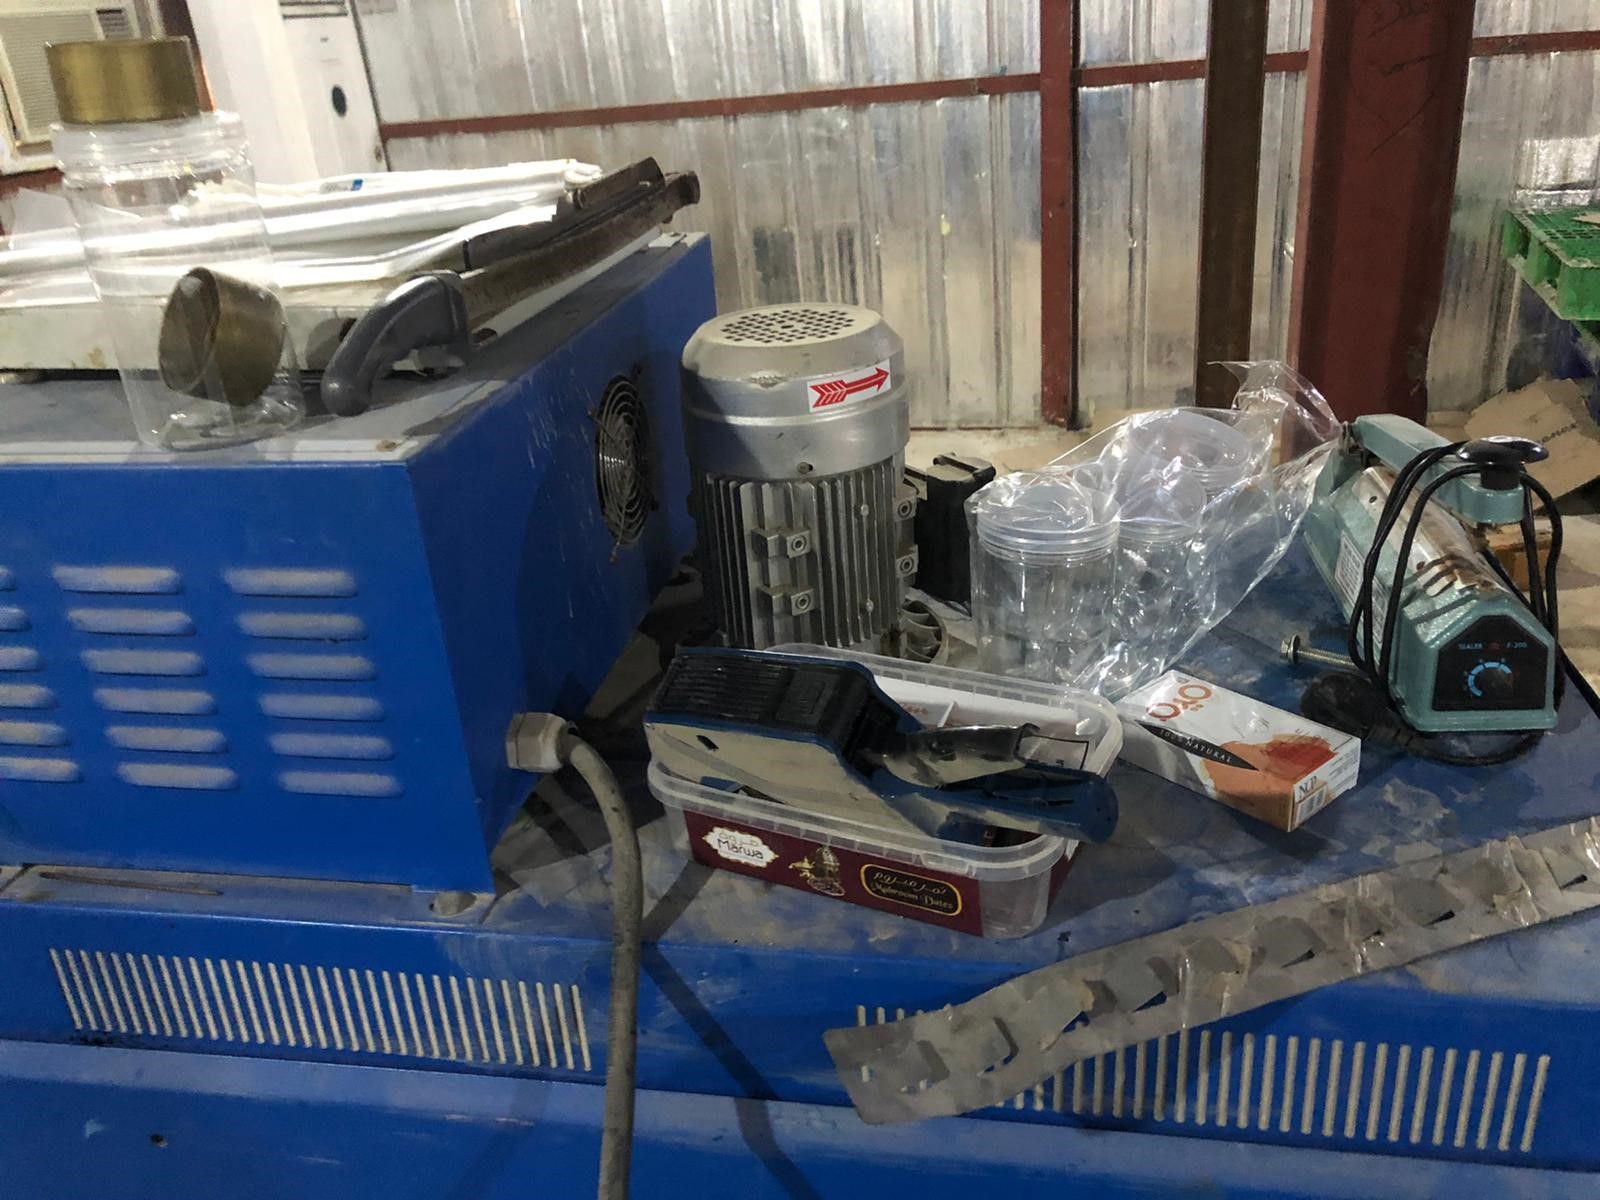 Machinery used to change expiry dates seized from food store